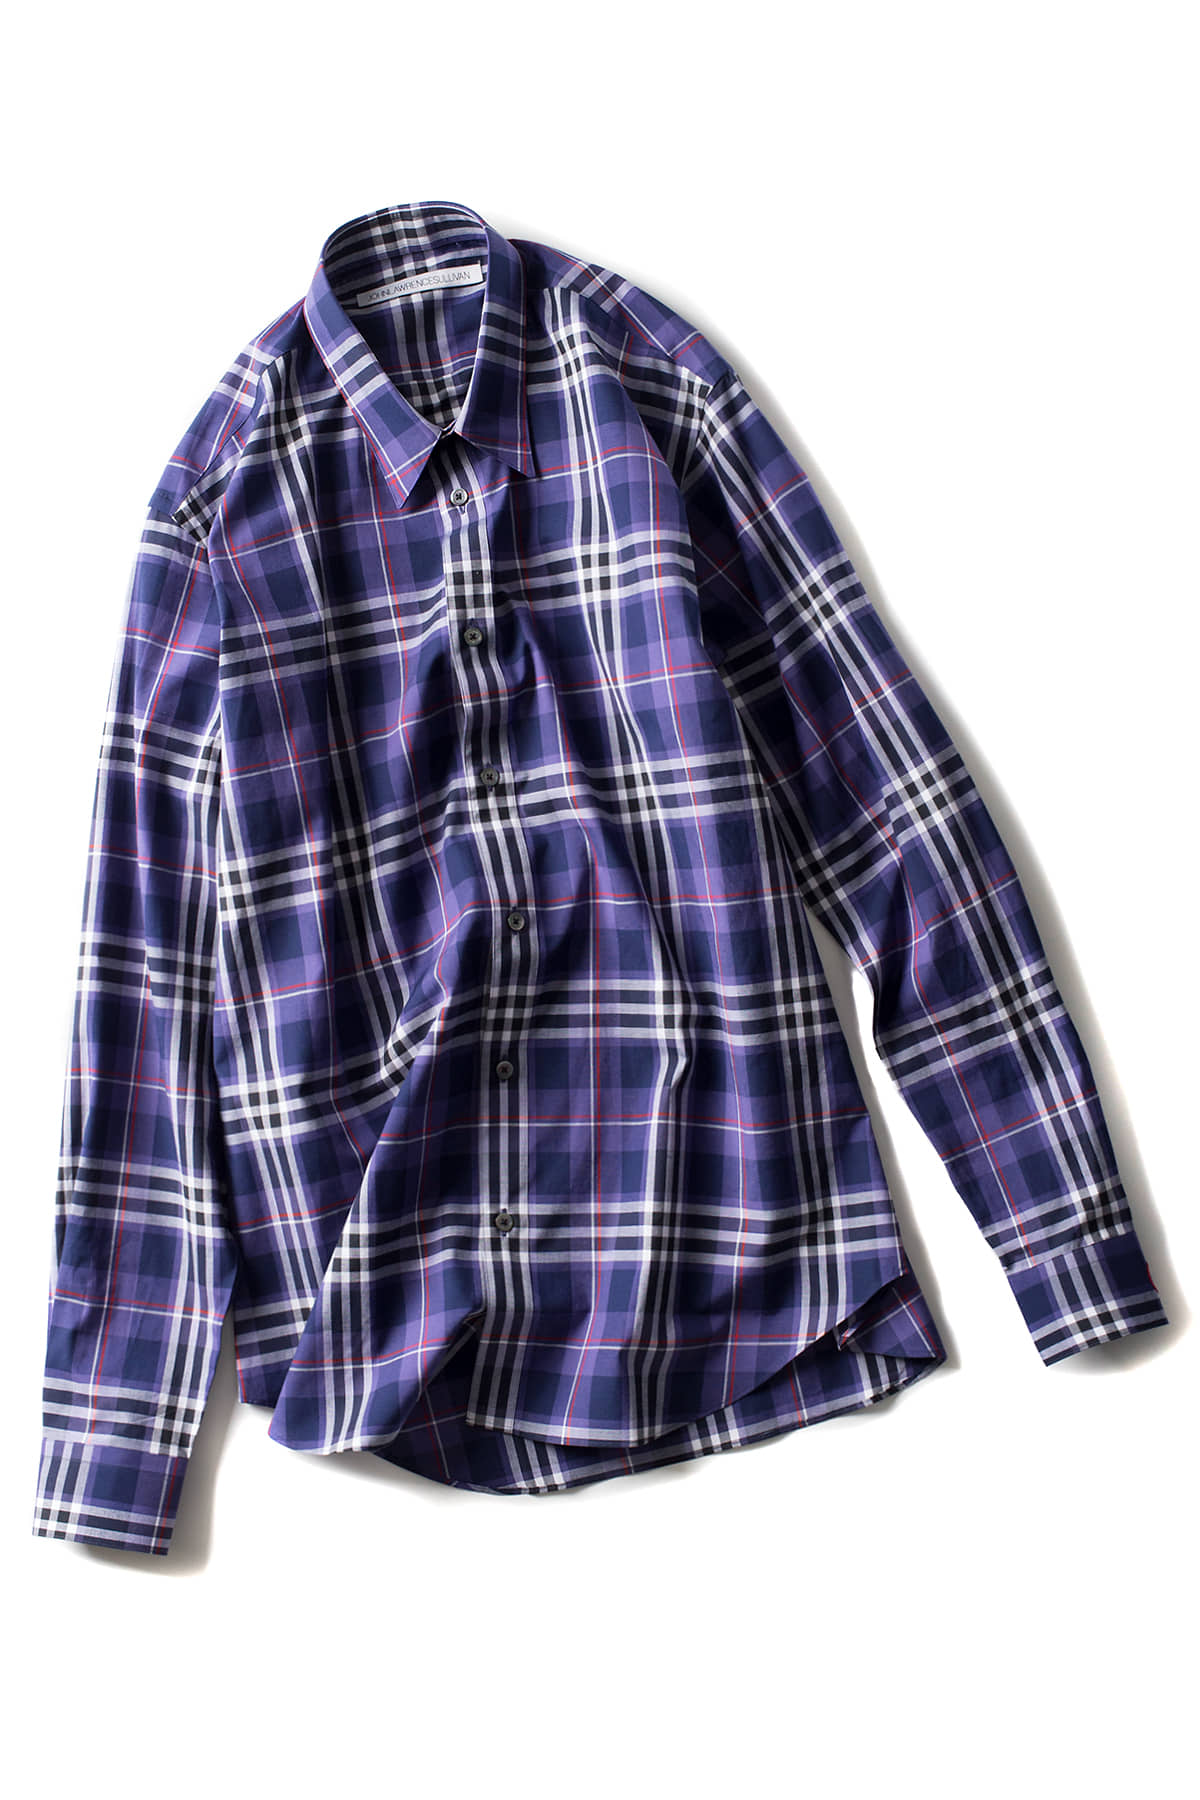 JOHN LAWRENCE SULLIVAN :Check Shirt (Purple)